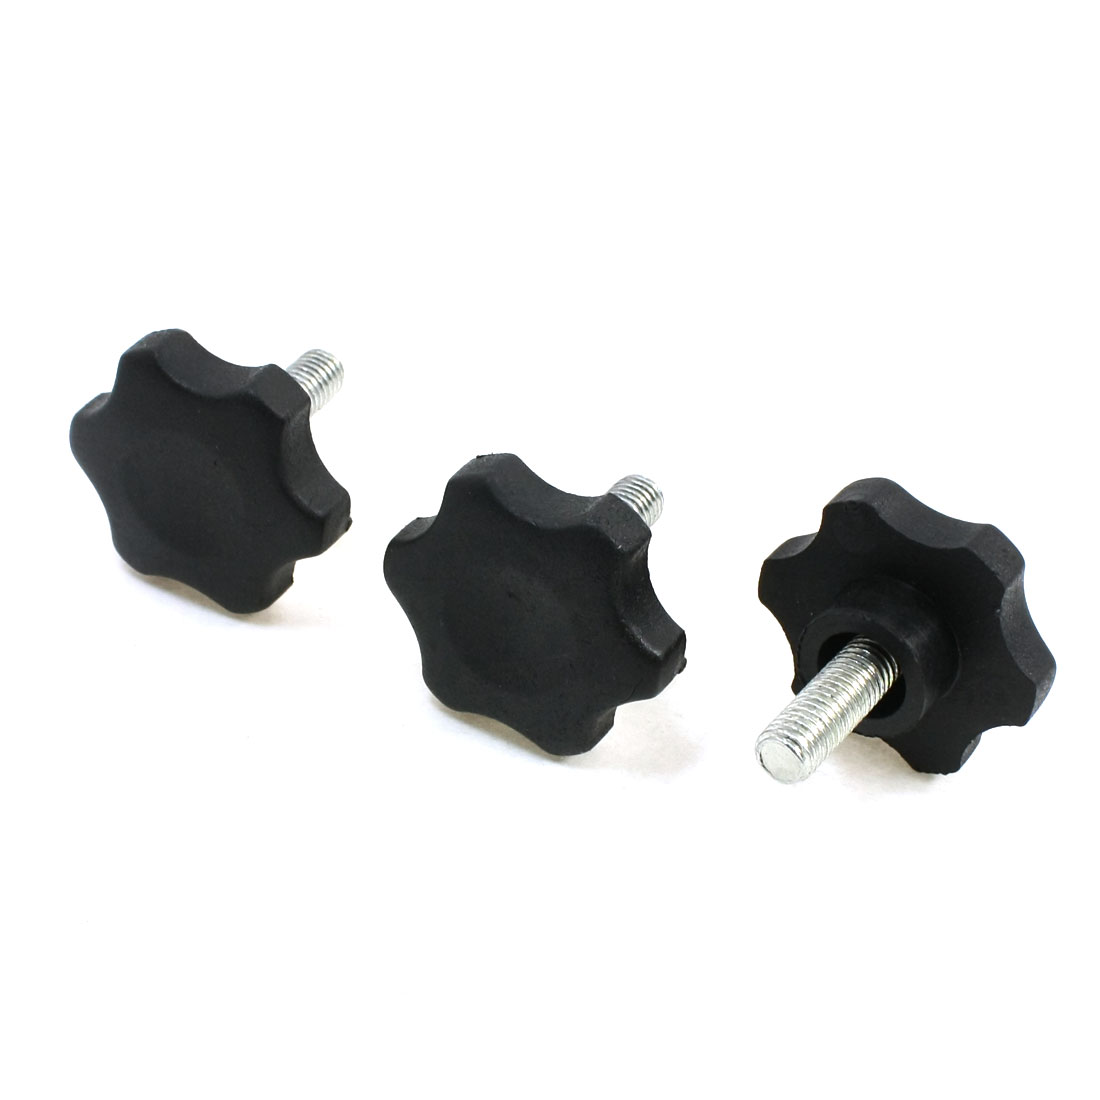 M8 x 20mm Thread 40mm Diameter Antislip Star Shaped Head Clamping Knob 3Pcs